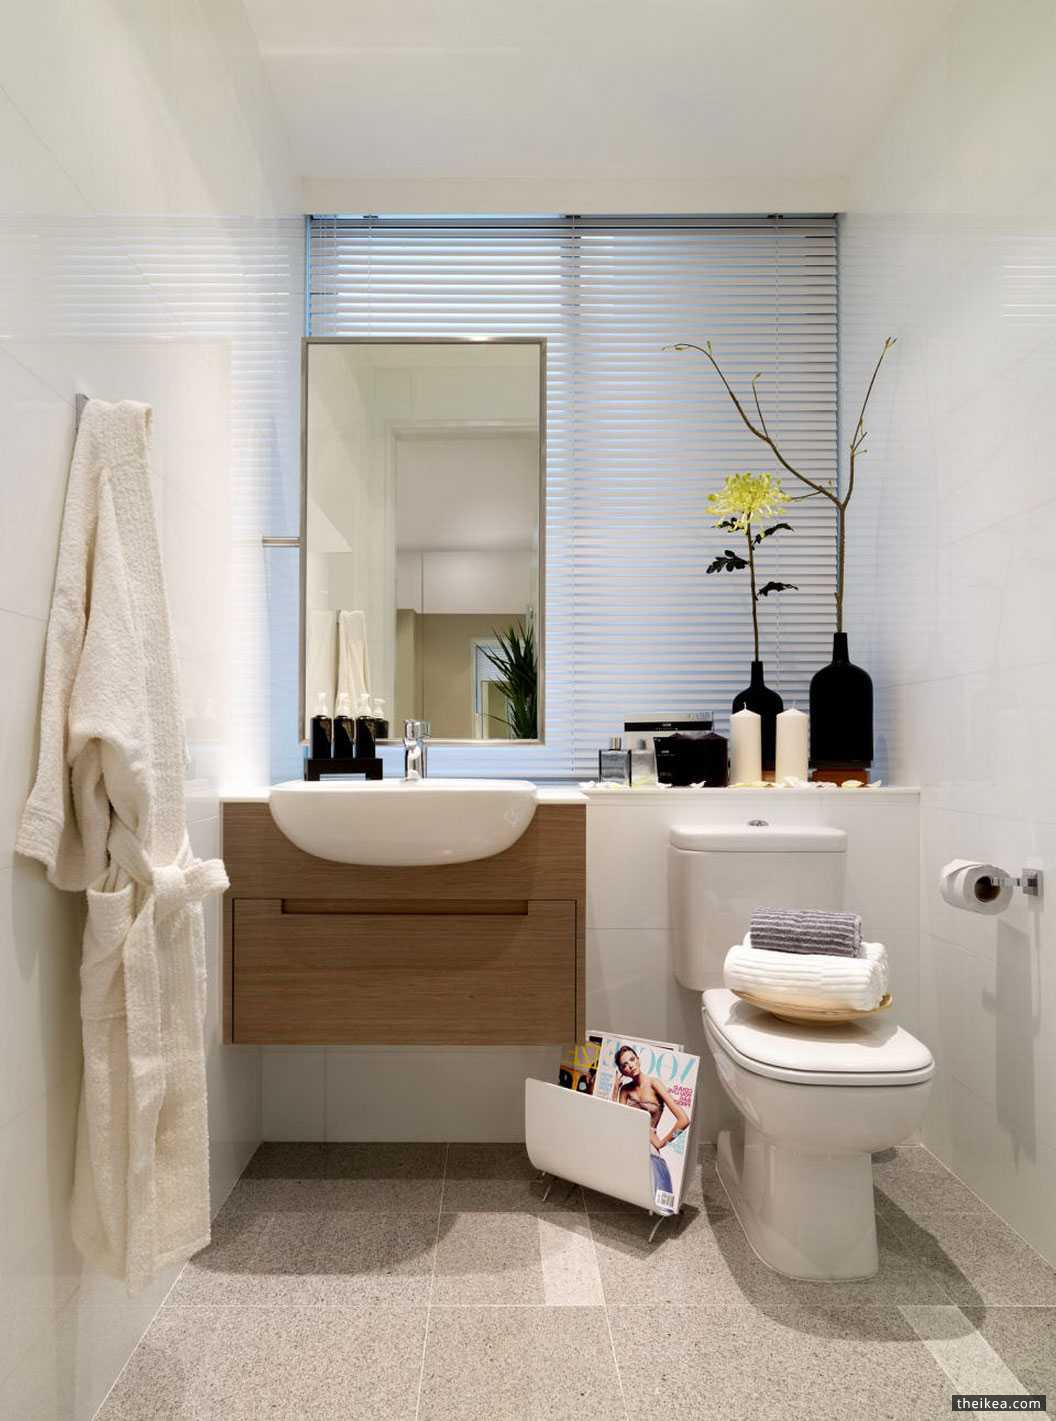 Little Luxury Bathroom Cabinets Decorations   Http://www.theikea.com/